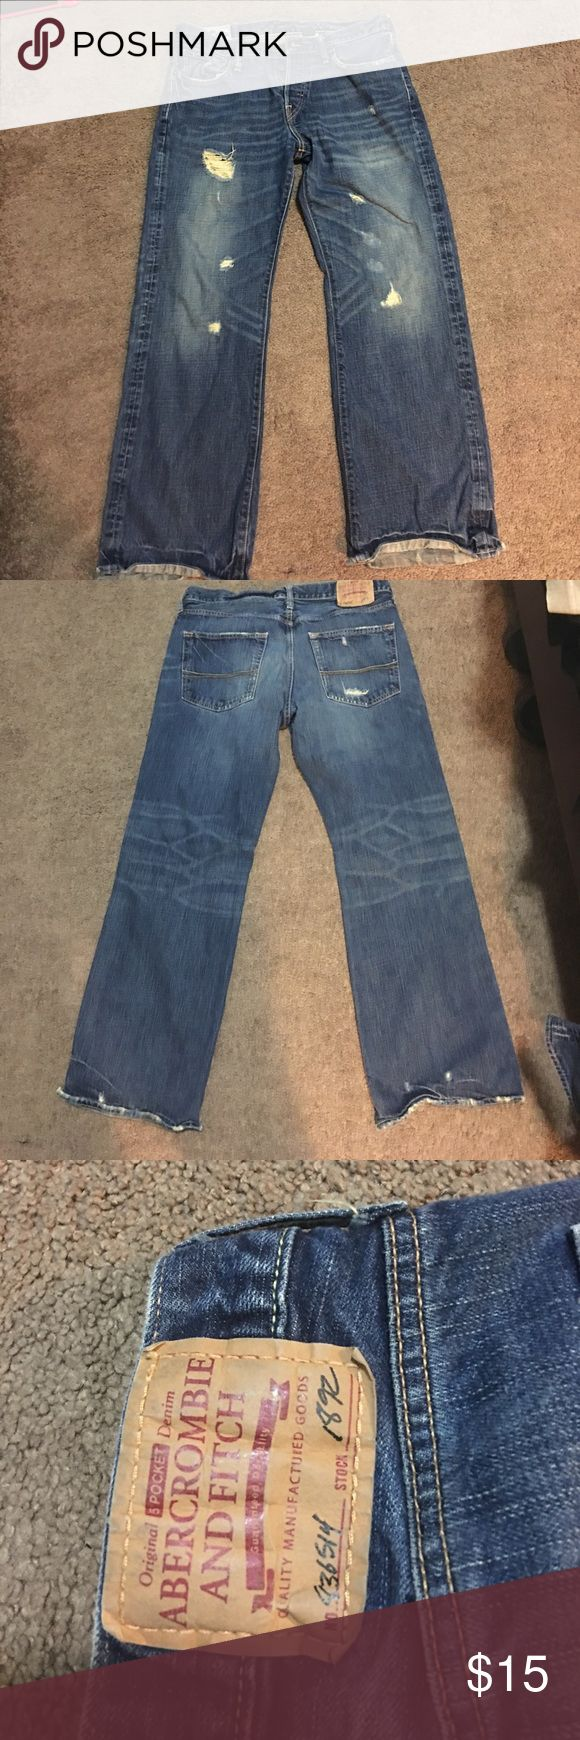 Abercrombie Men's jeans Perfect condition distressed design. Size 32x30 Abercrombie & Fitch Jeans Relaxed